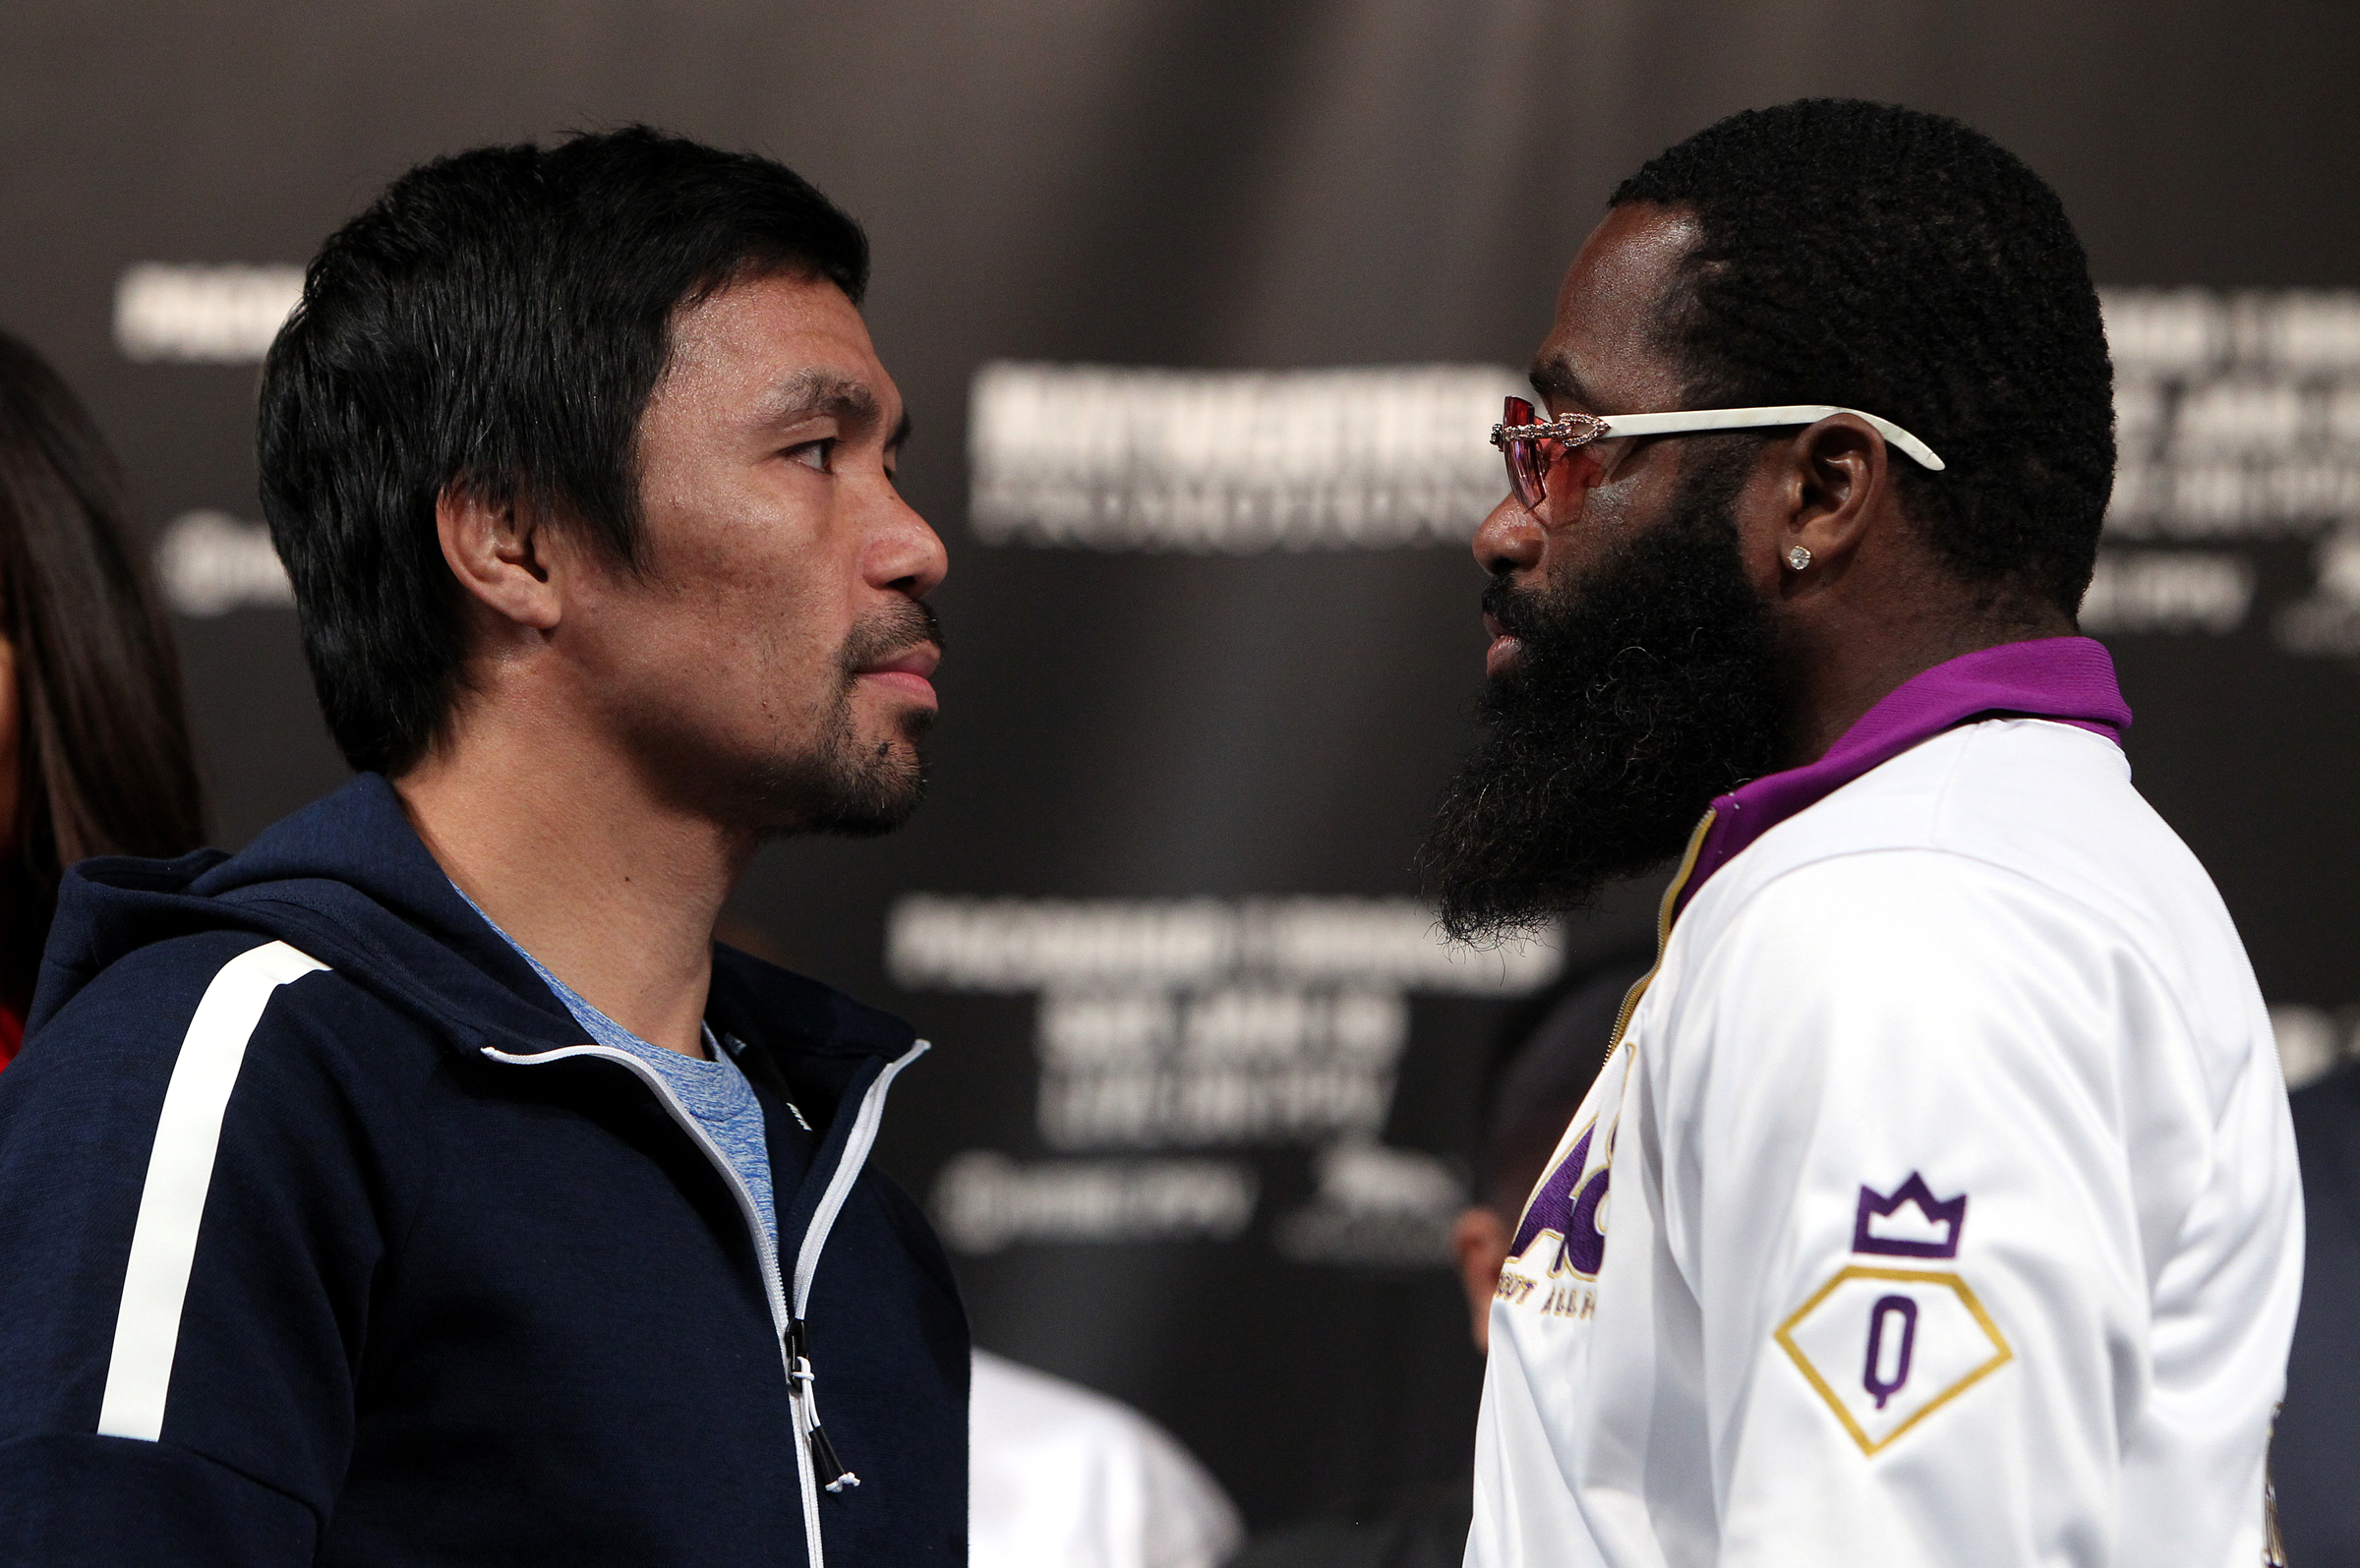 Pacquiao Broner PC 190116 001 - Final Press Conf Quotes: Manny Pacquiao vs Adrien Broner